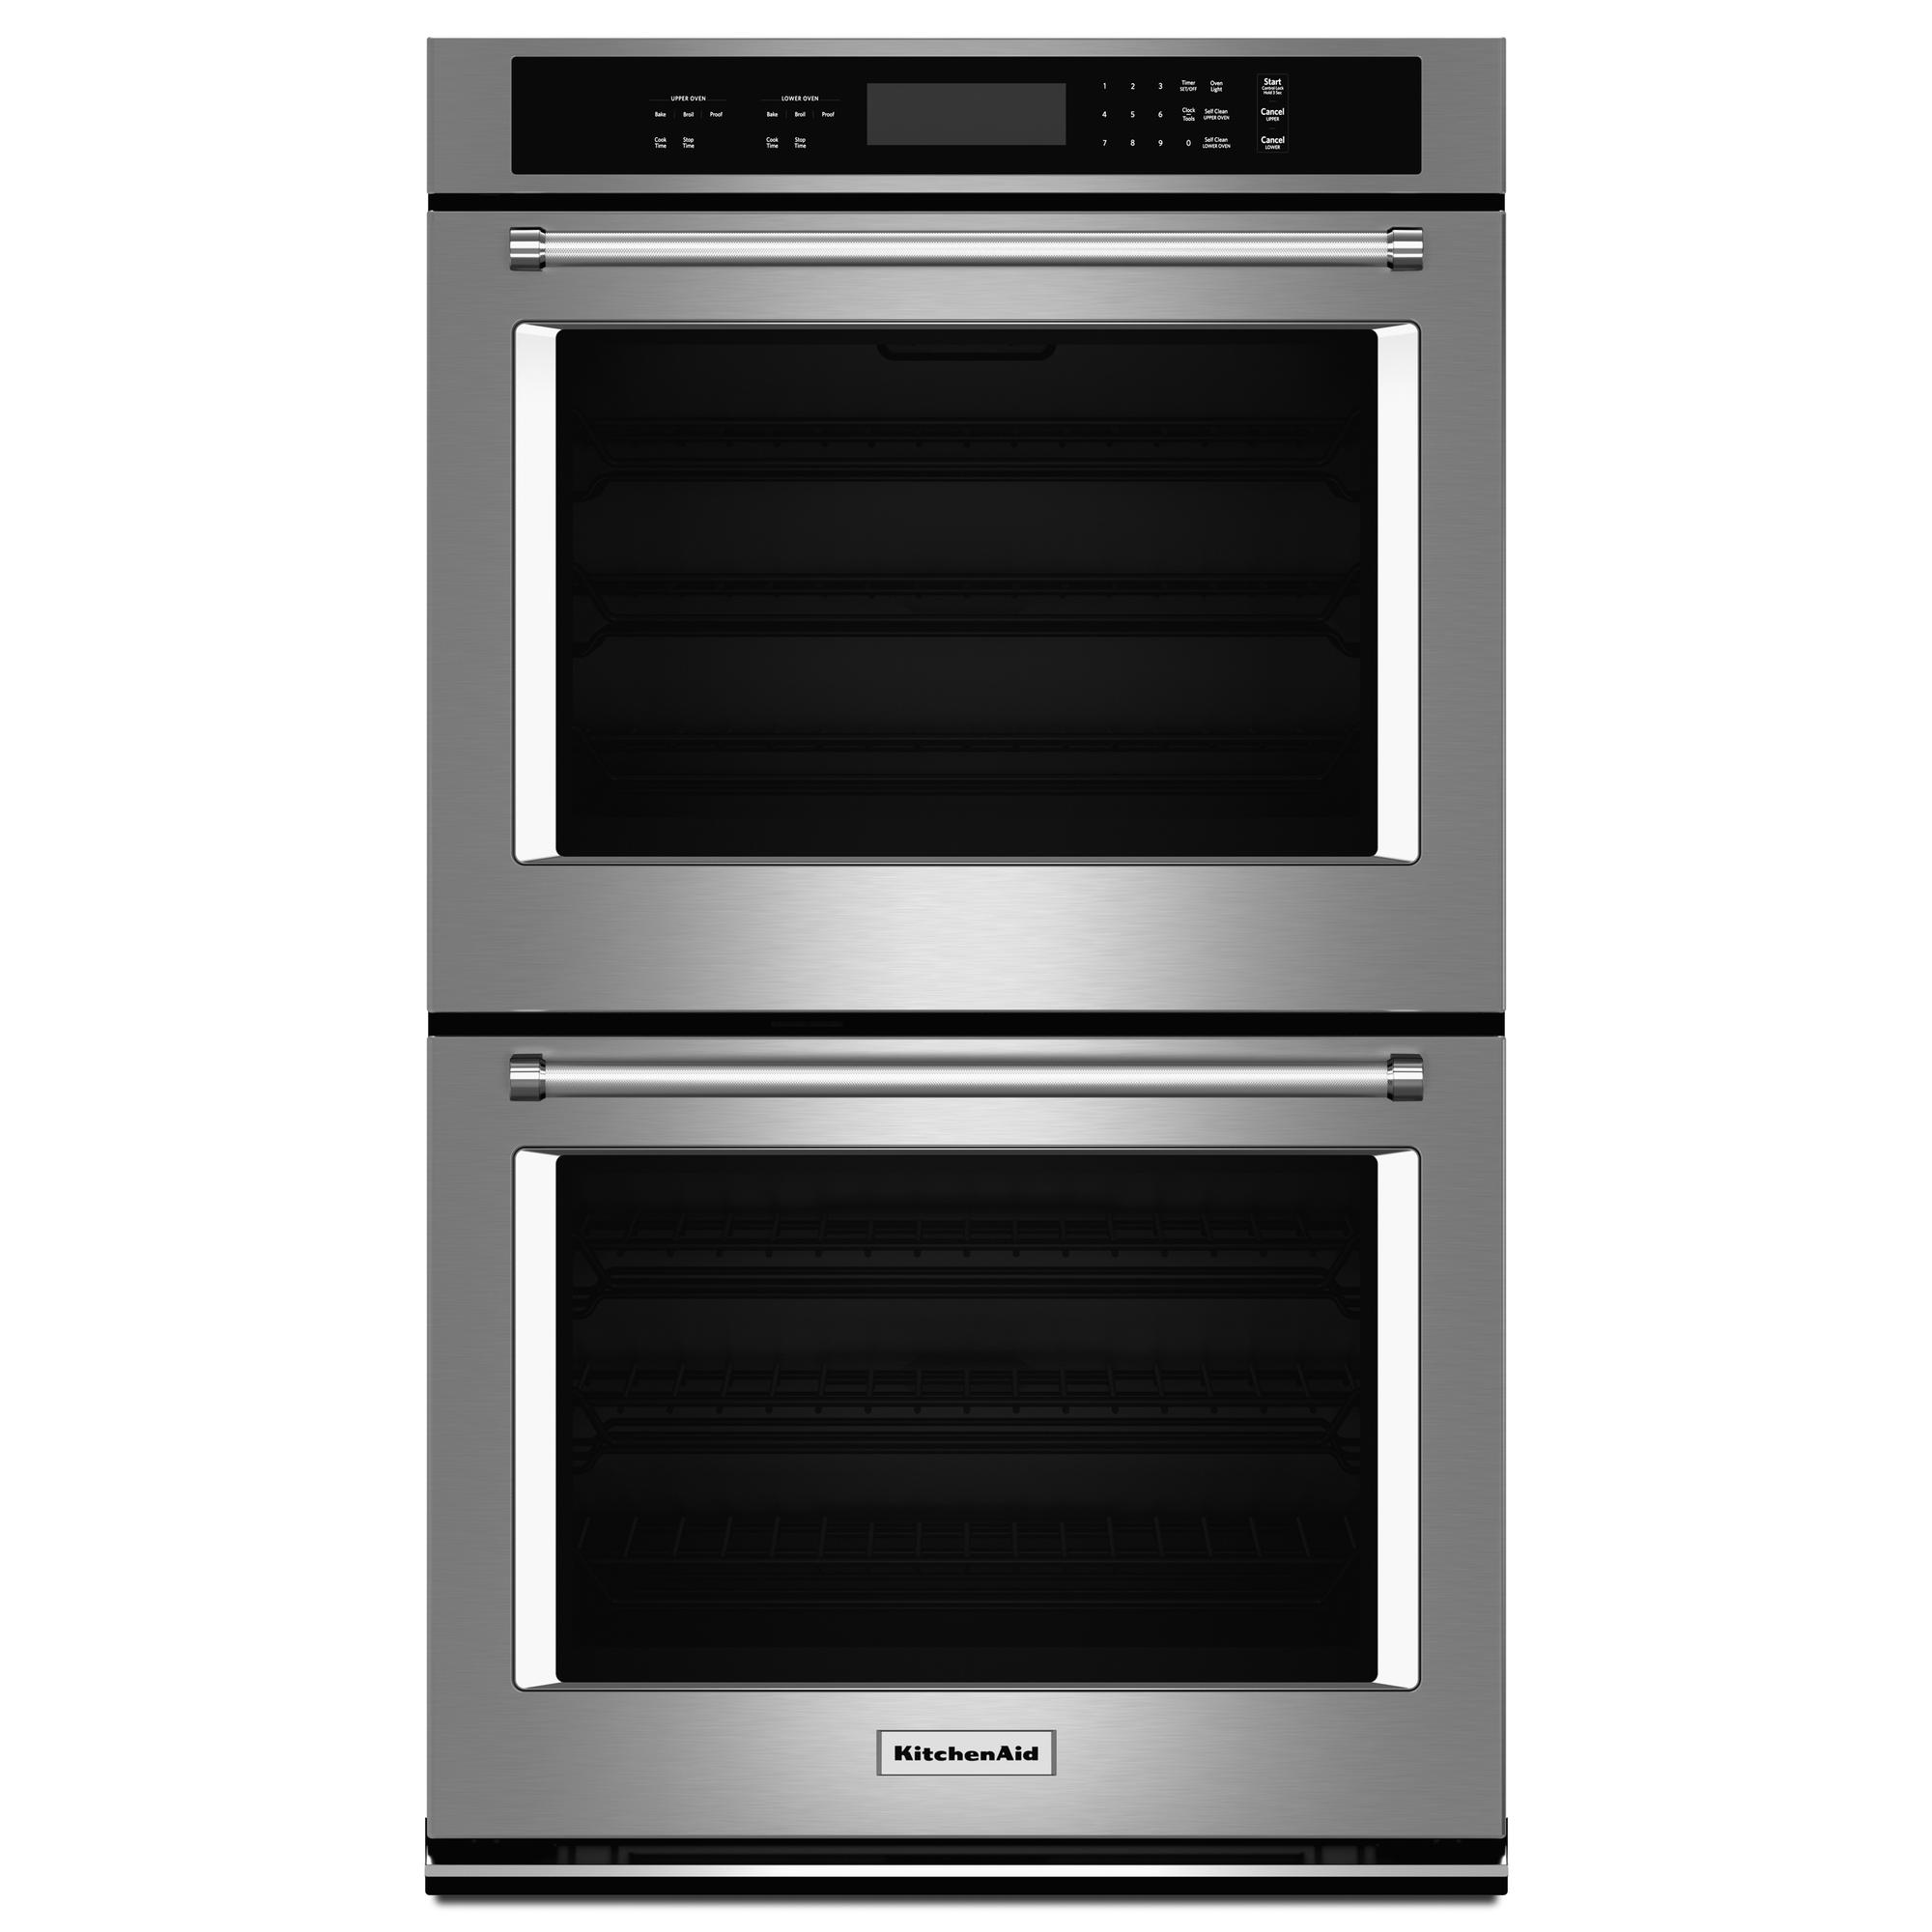 4-3-cu-ft-Each-Double-Wall-Oven-w-Even-Heat%E2%84%A2-Thermal-Bake-Broil-Stainless-Steel